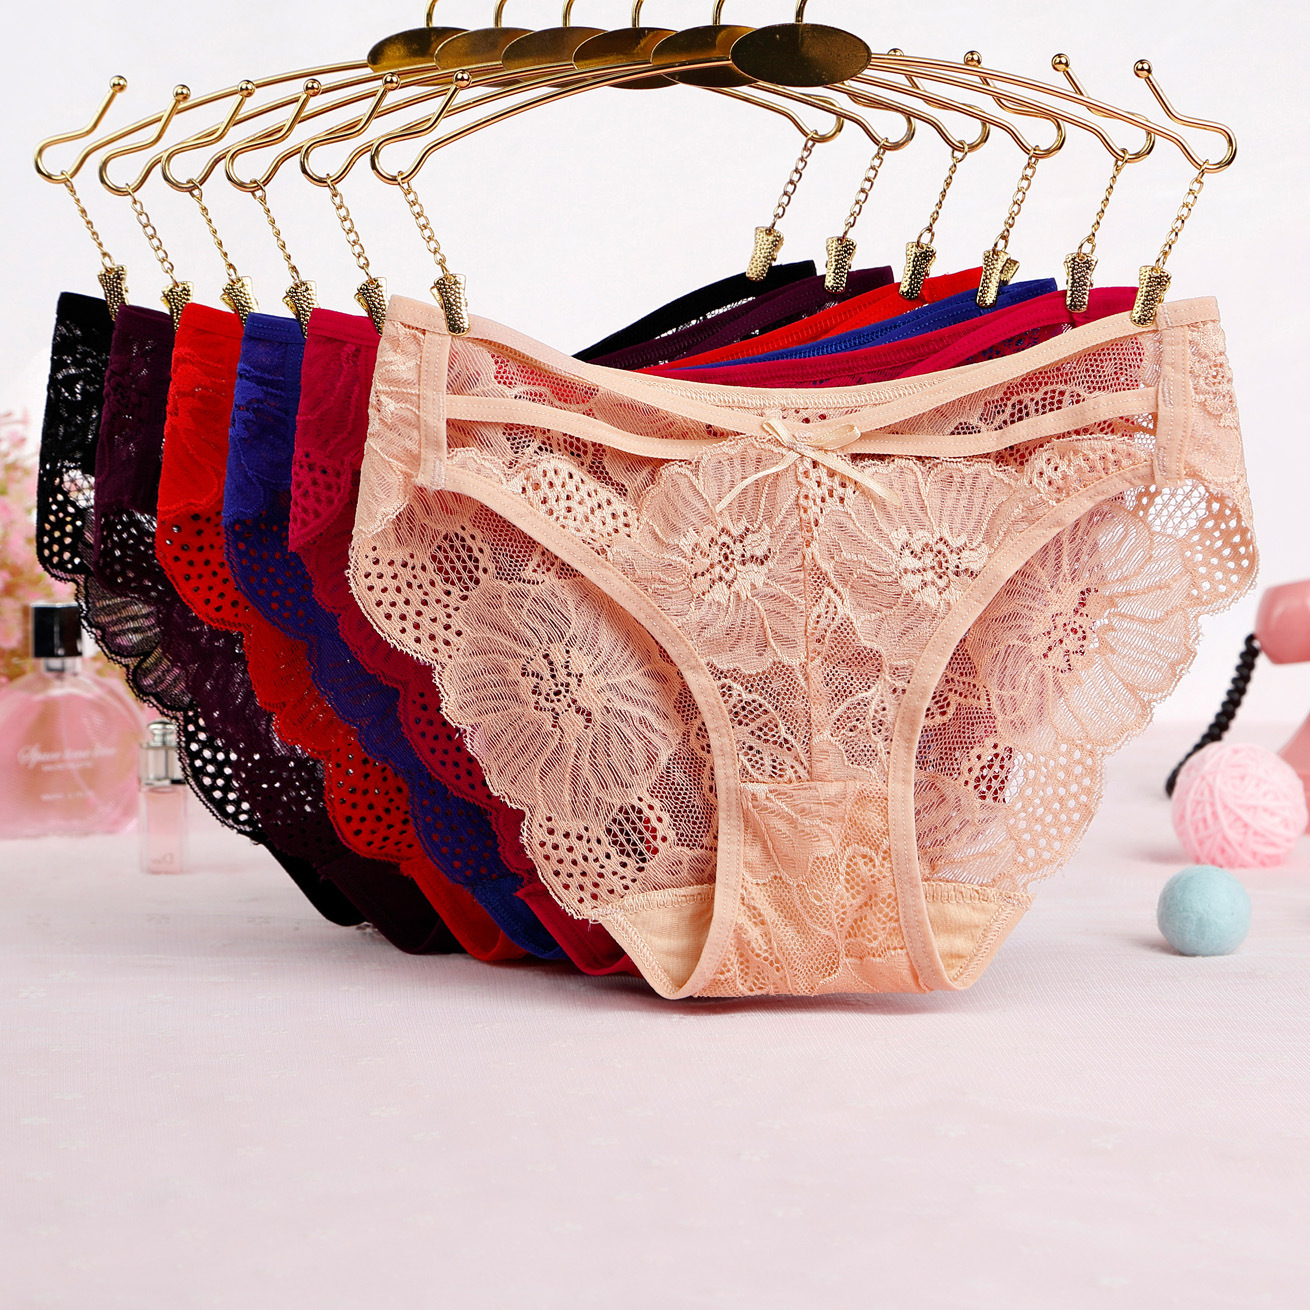 7color Gift Beautiful Lace Leaves Women's Sexy Lingerie Thongs G-string Underwear Panties Briefs Ladies T-back 1pcs/Lot Wq923